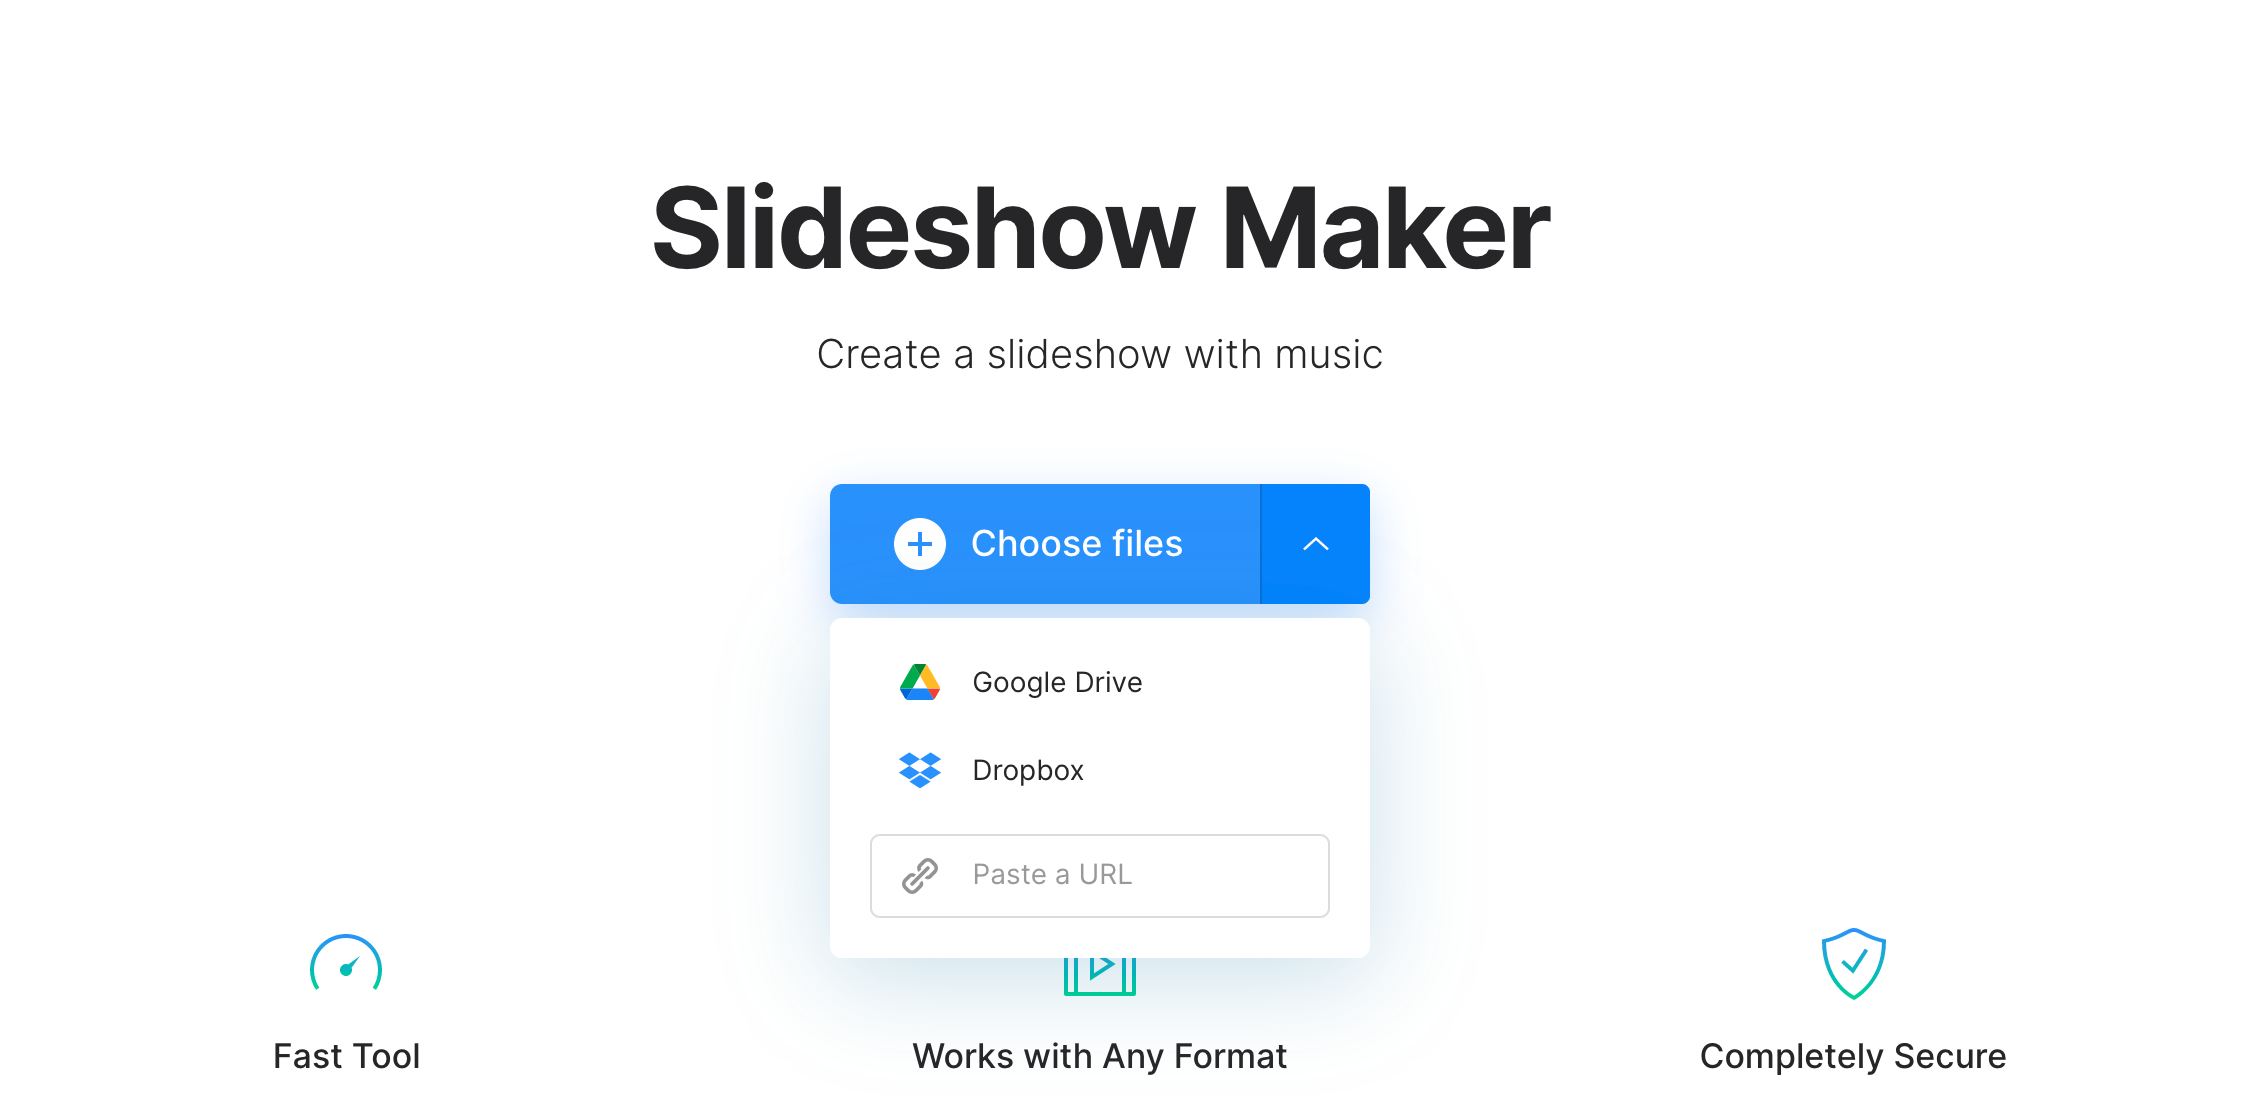 Upload files for slideshow with music